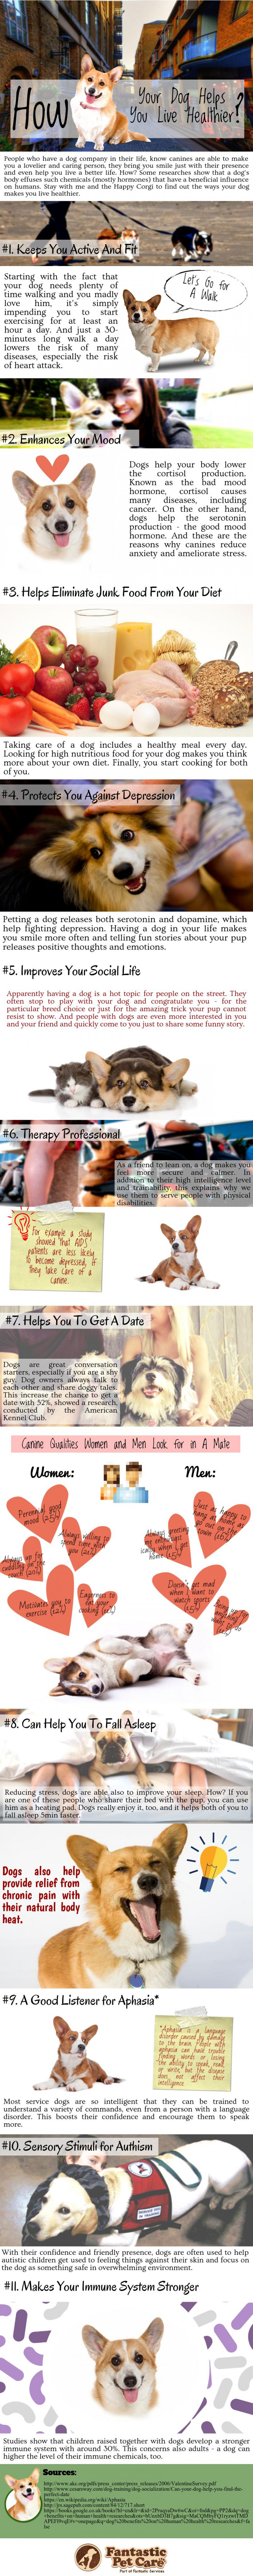 How Your Dog Helps You Live Healthier Infographic